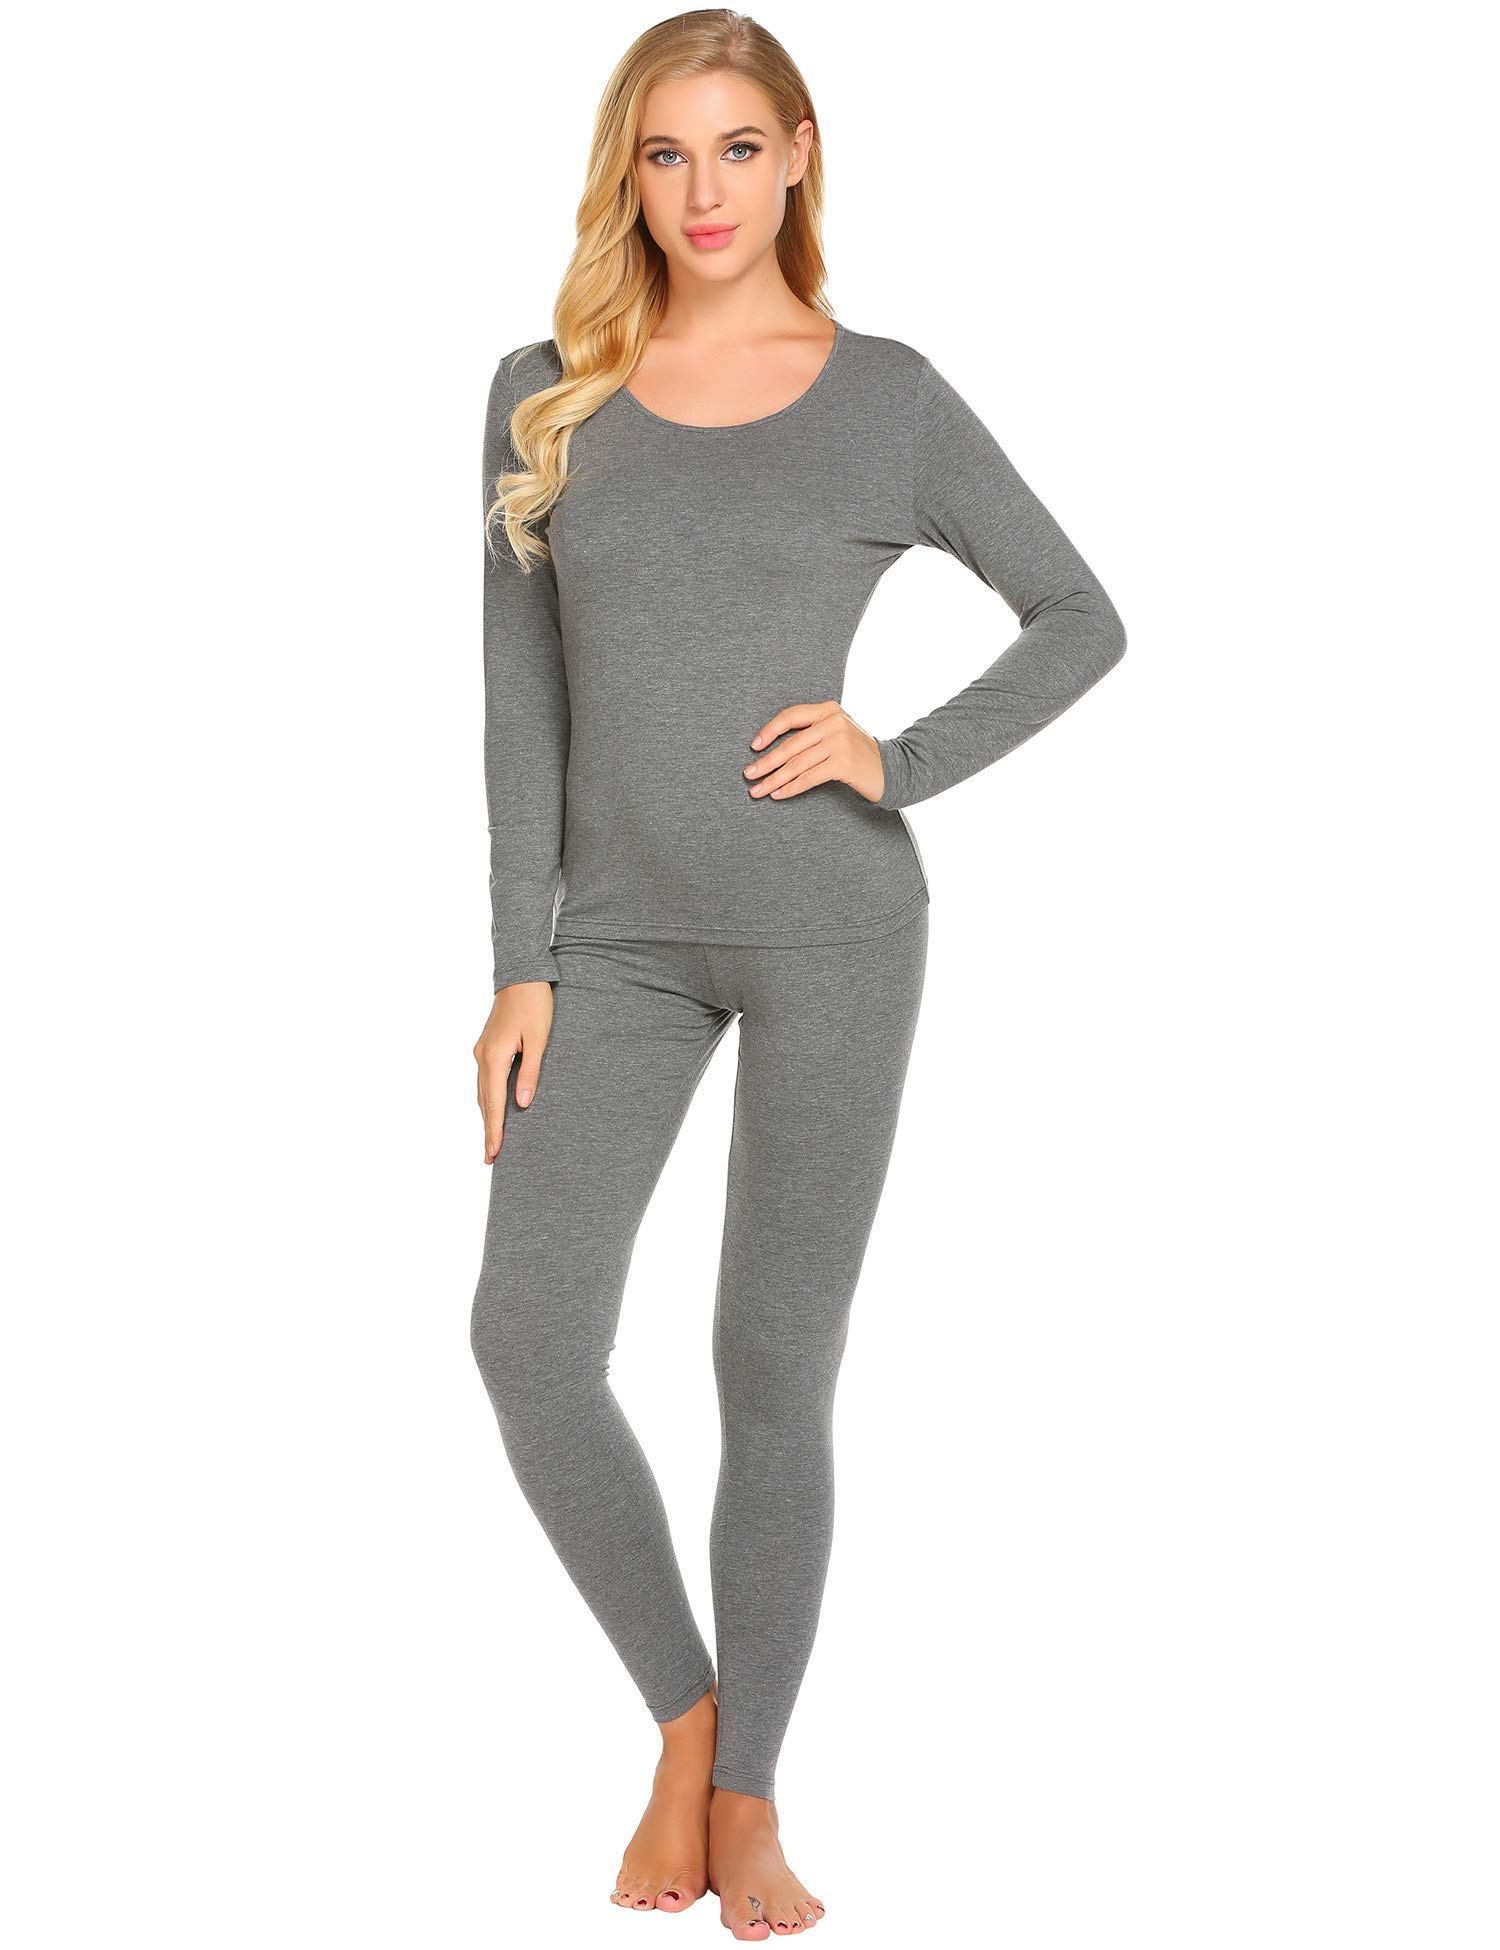 Ekouaer Women's Long Thermal Underwear Winter Base Layering Set Slimming Top & Bottom Pajama S-XXXL